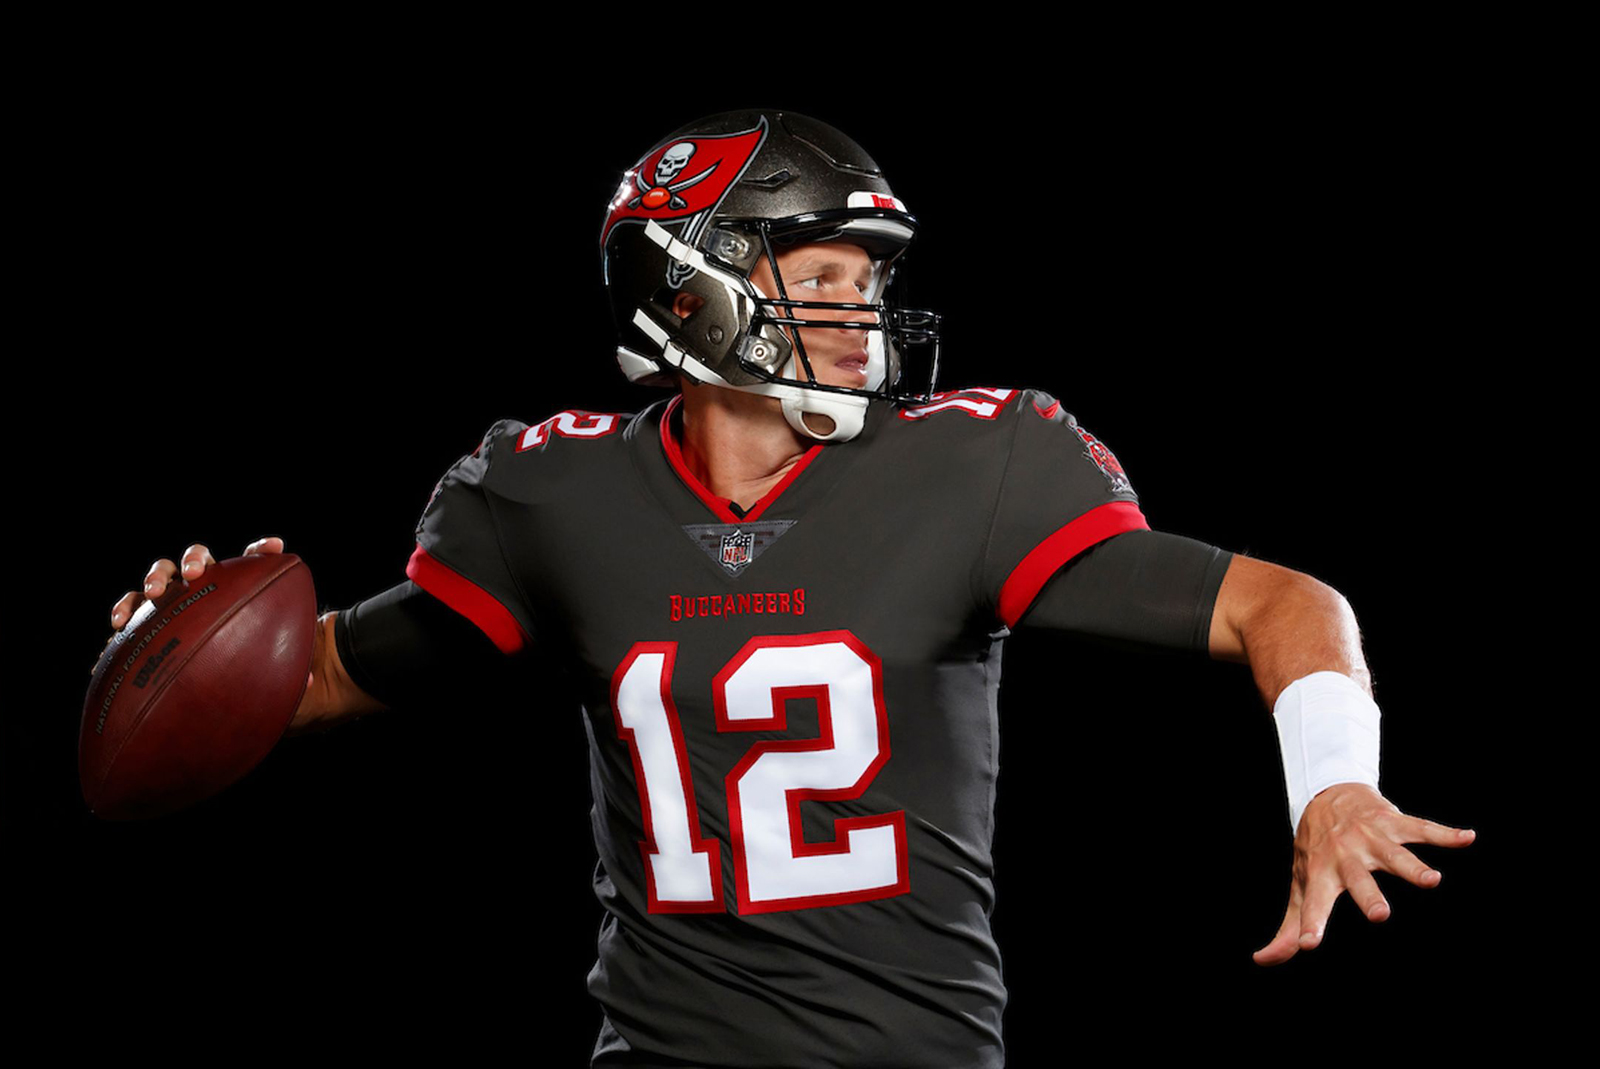 Brady Bucs Look To Solidify Playoff Chances Against Falcons Wsvn 7news Miami News Weather Sports Fort Lauderdale